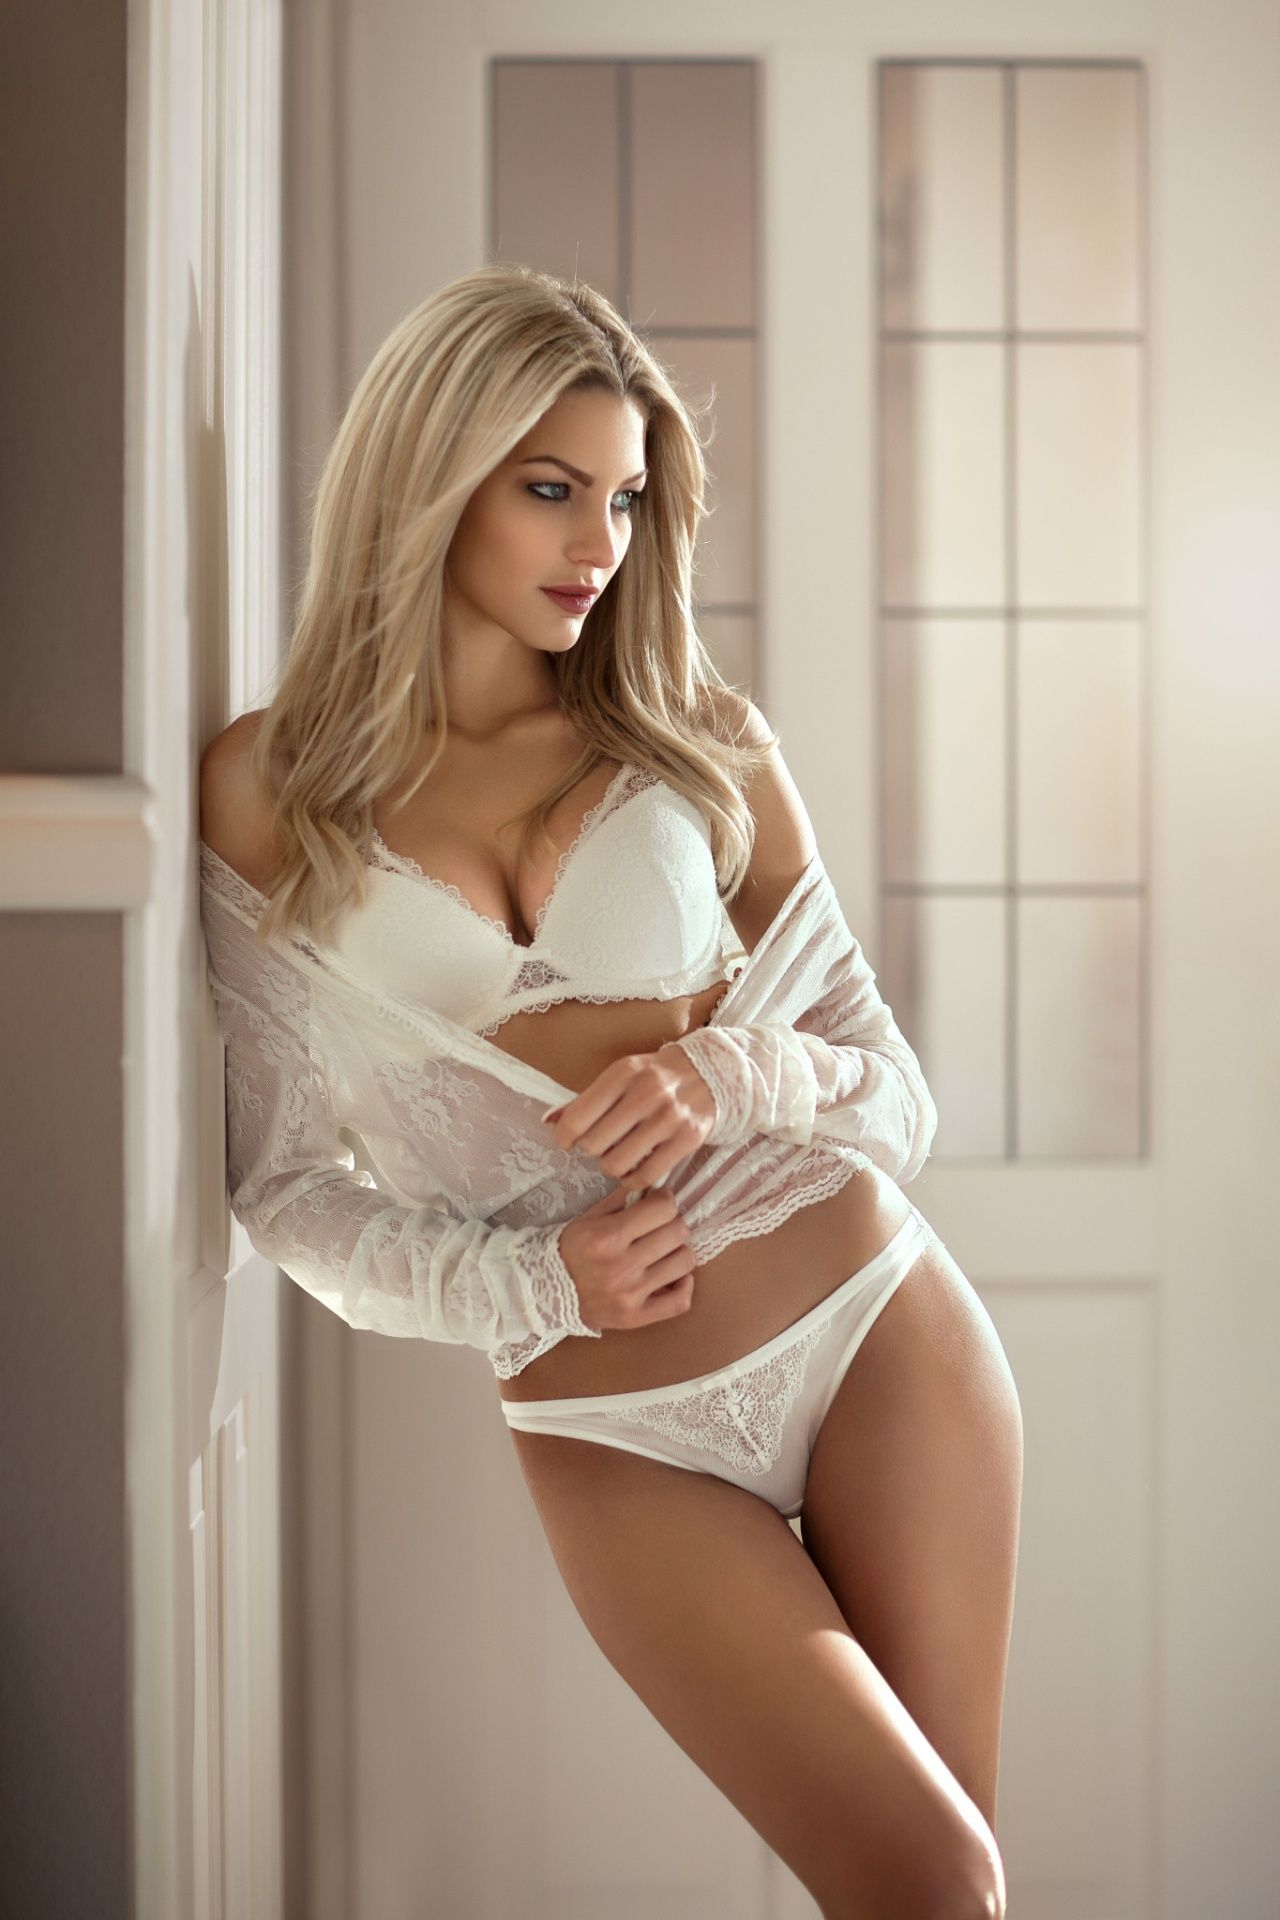 Blonde in lingerie chating